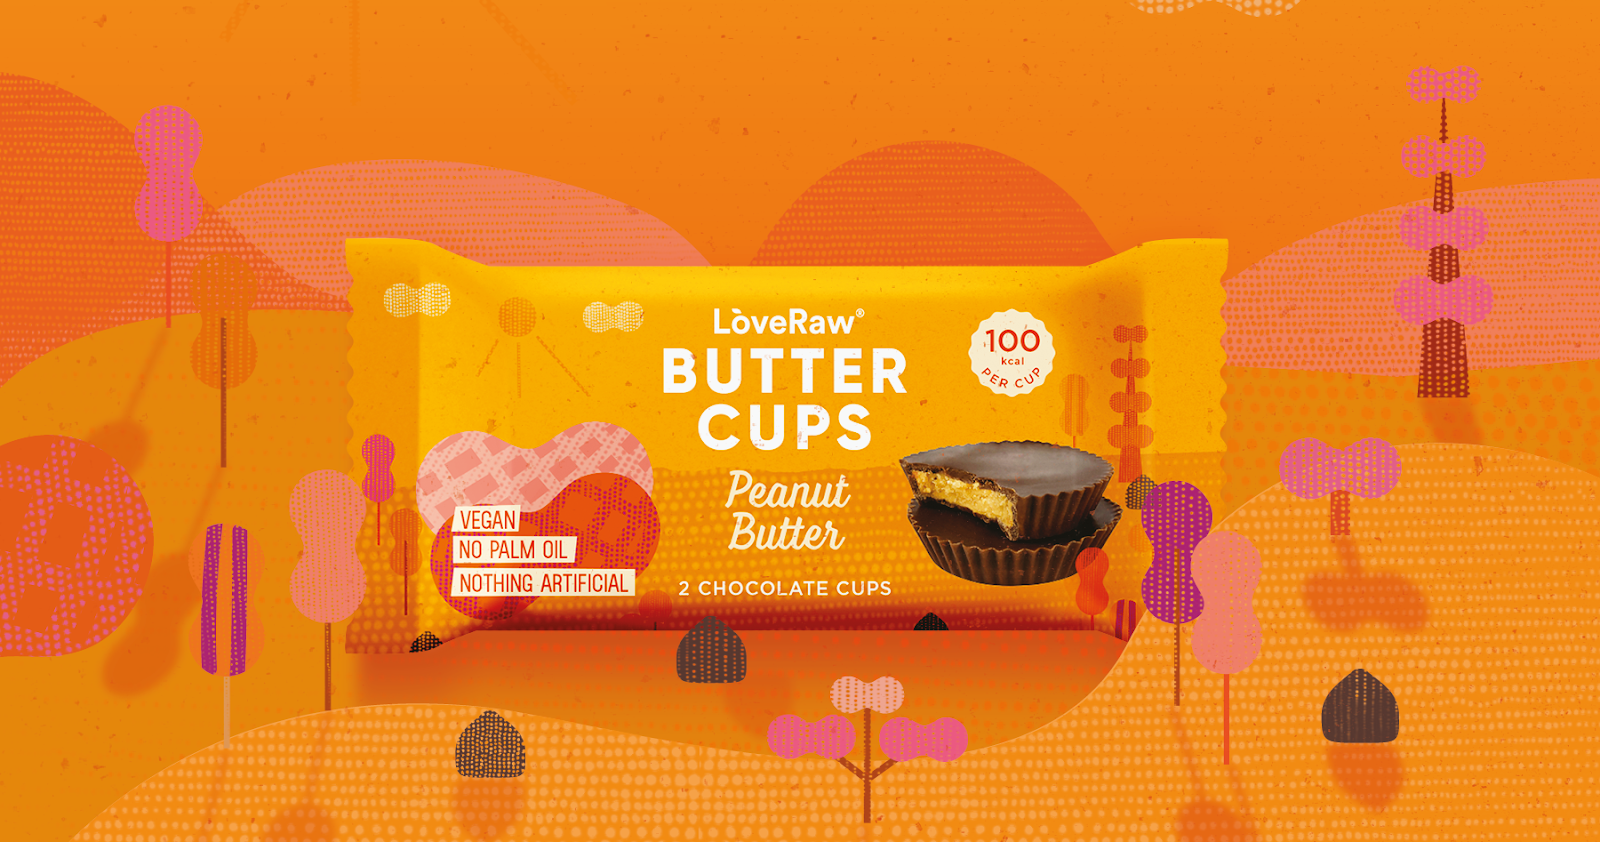 palm-oil free vegan peanut butter cups